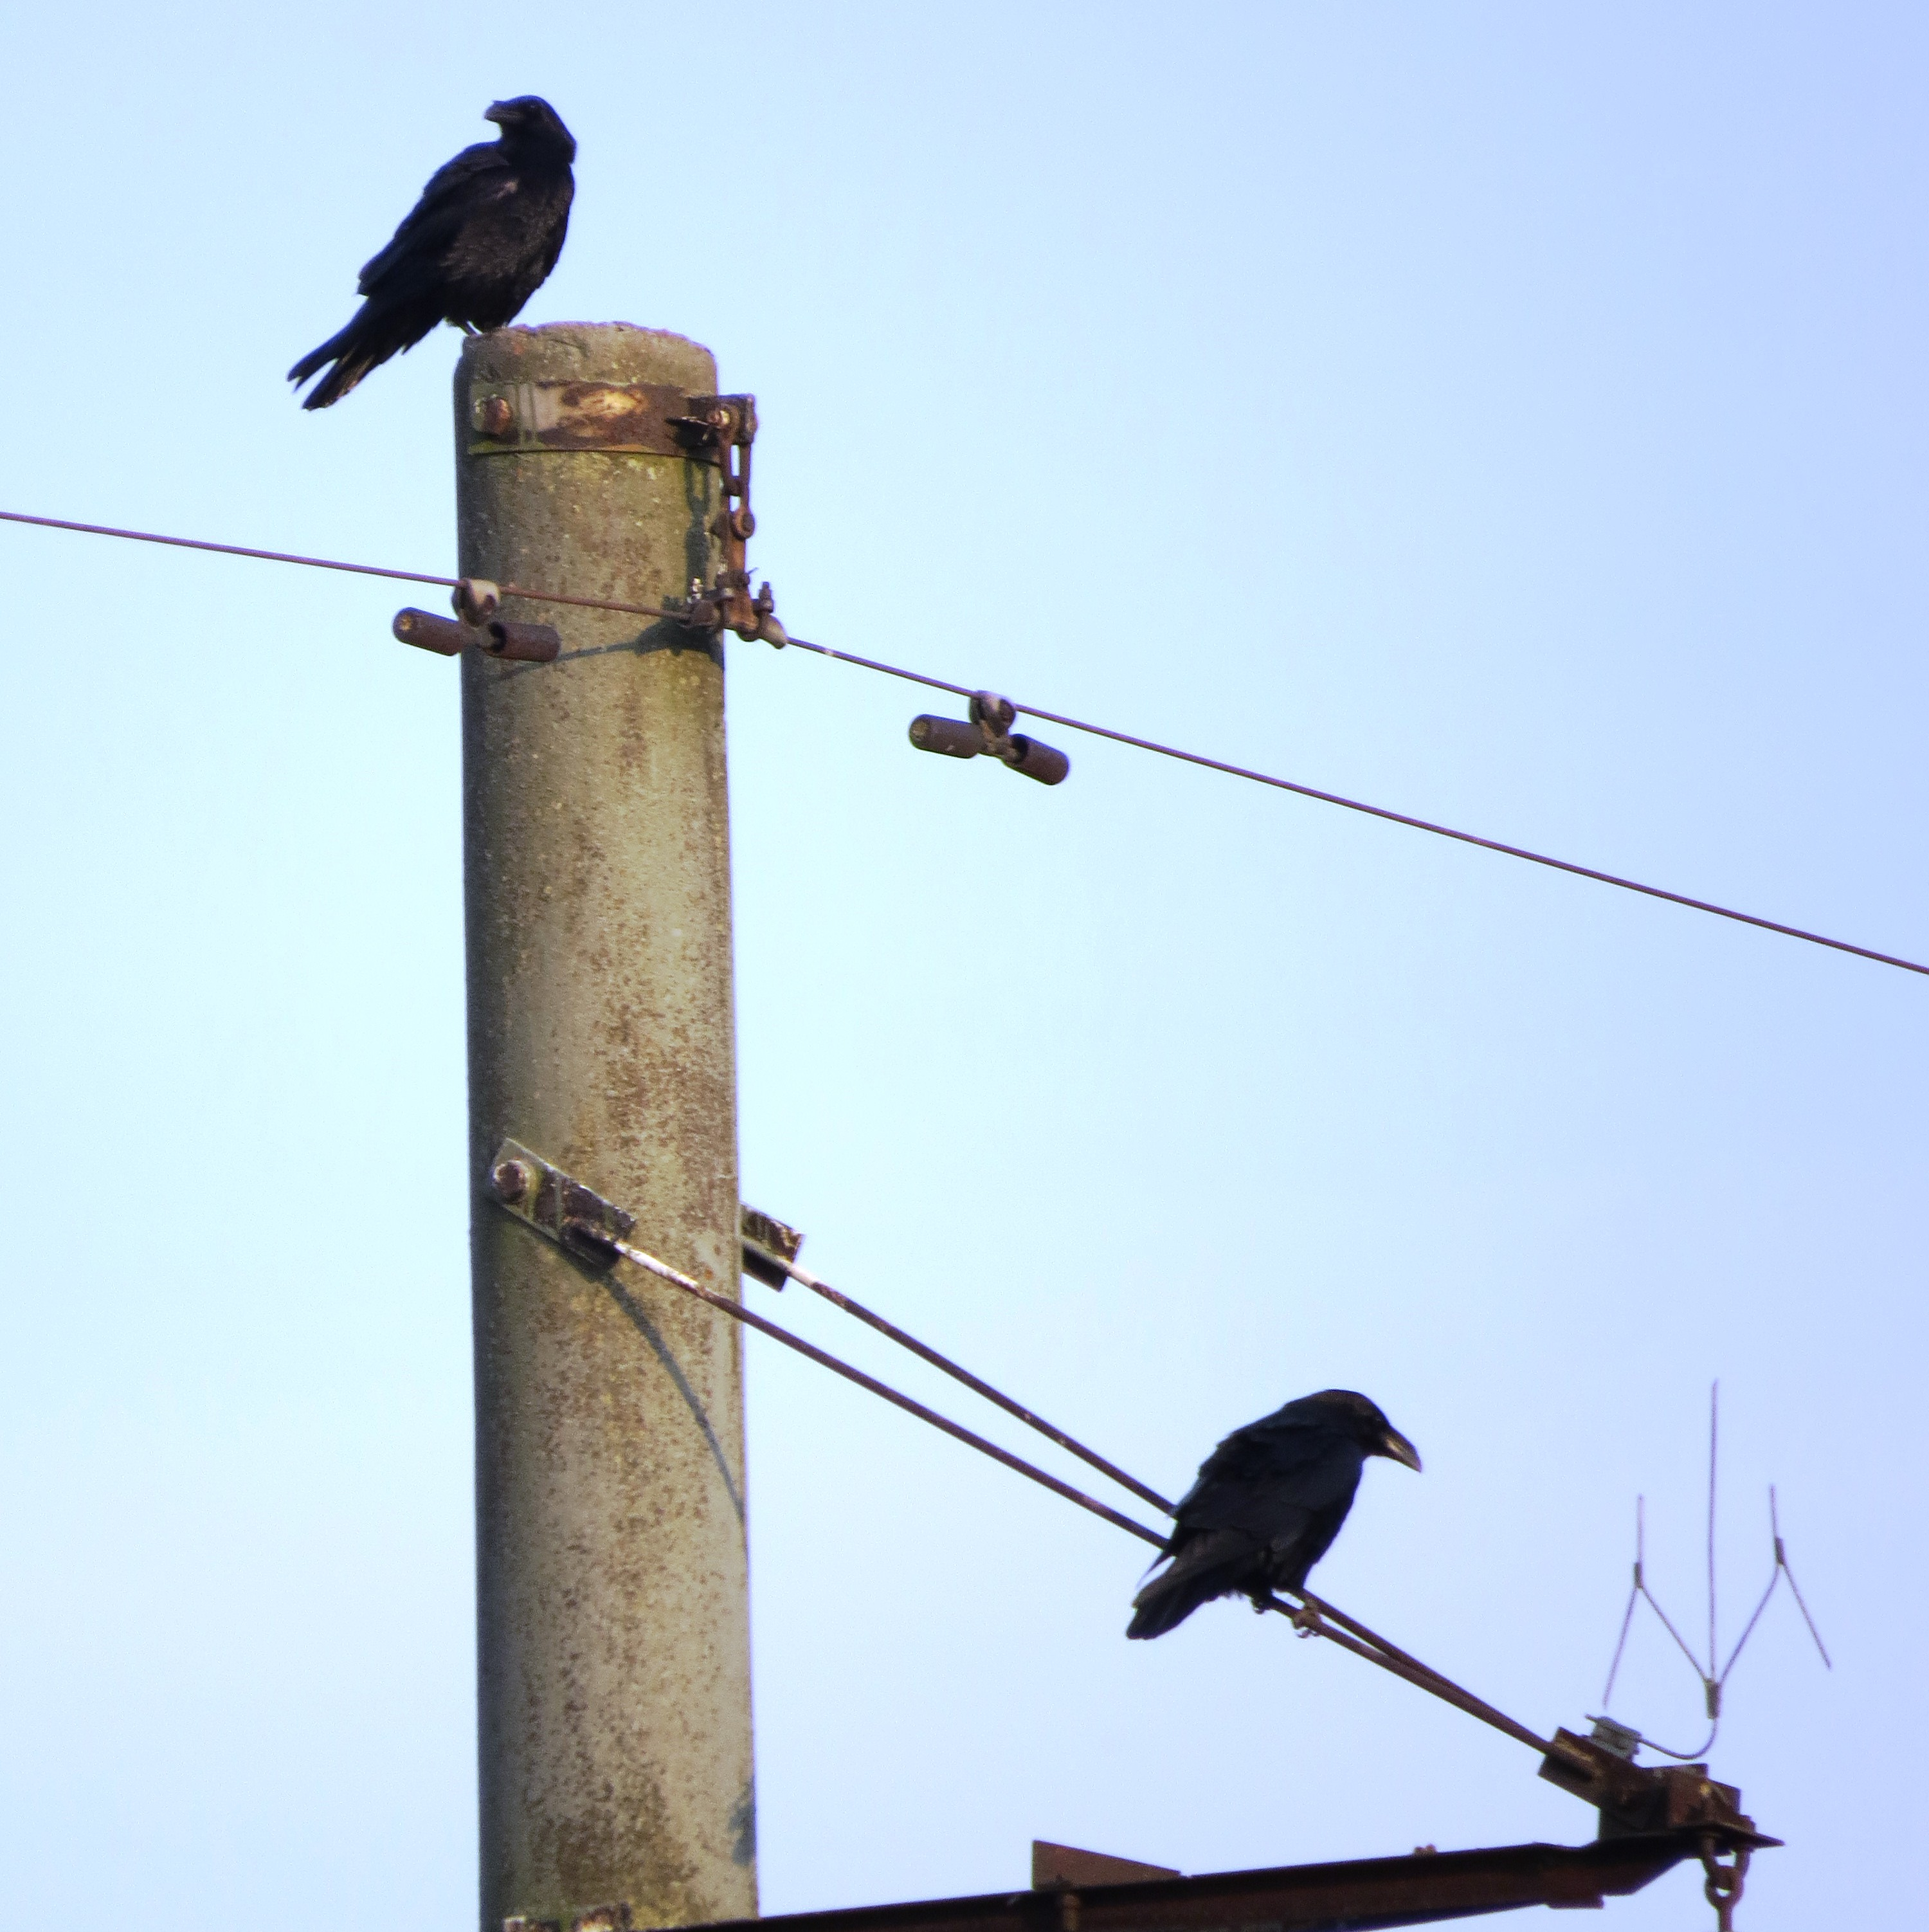 Ravens are guarding their nests